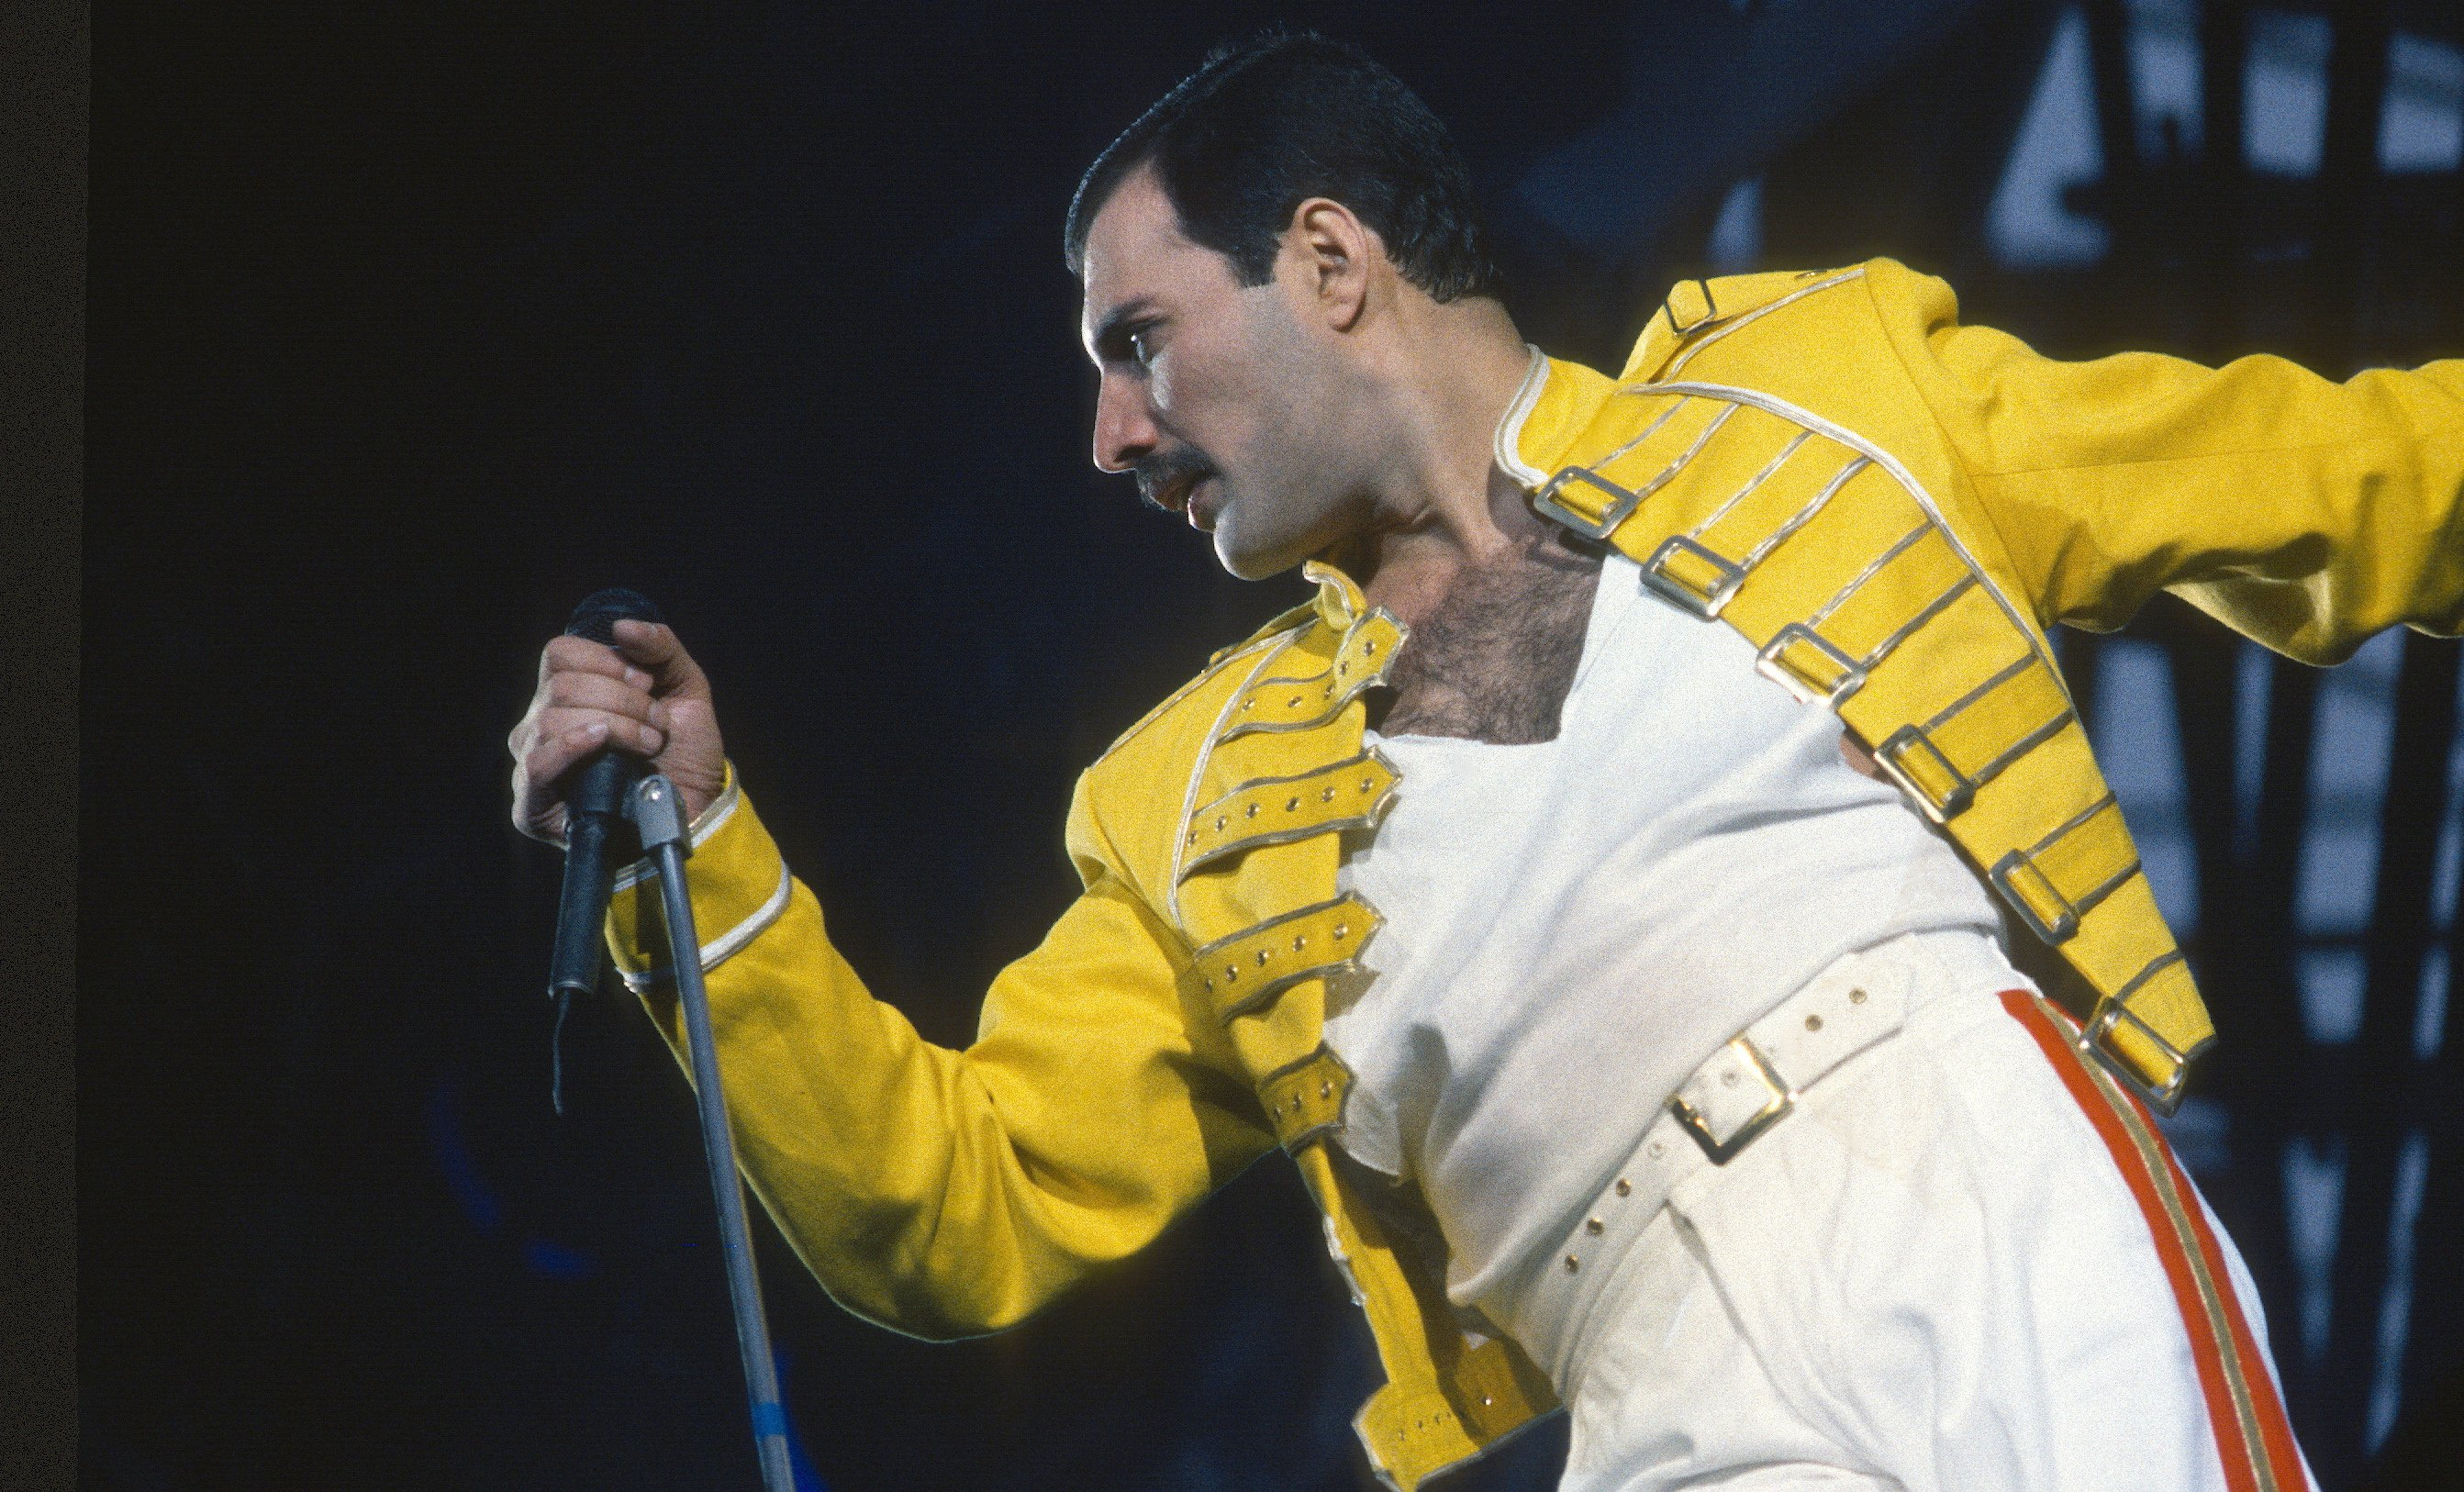 Freddie Mercury of the rock group Queen perfumes at a concert on January 01, 1986 in London, England. | Photo: GettyImages